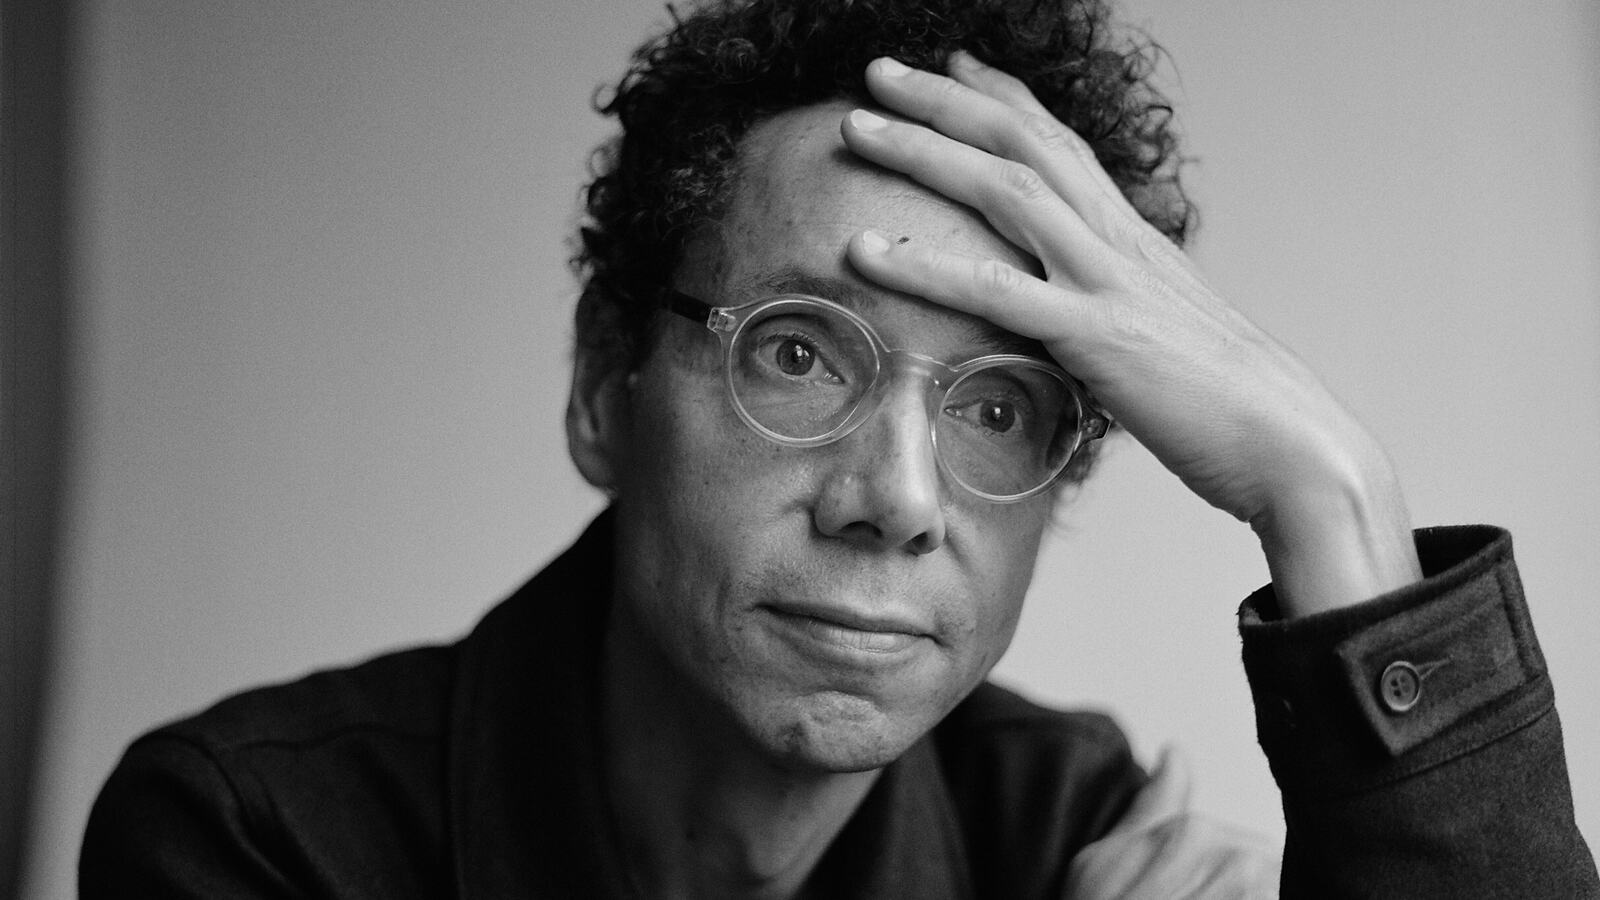 Gladwell looking into distance with hand rested on forehead.